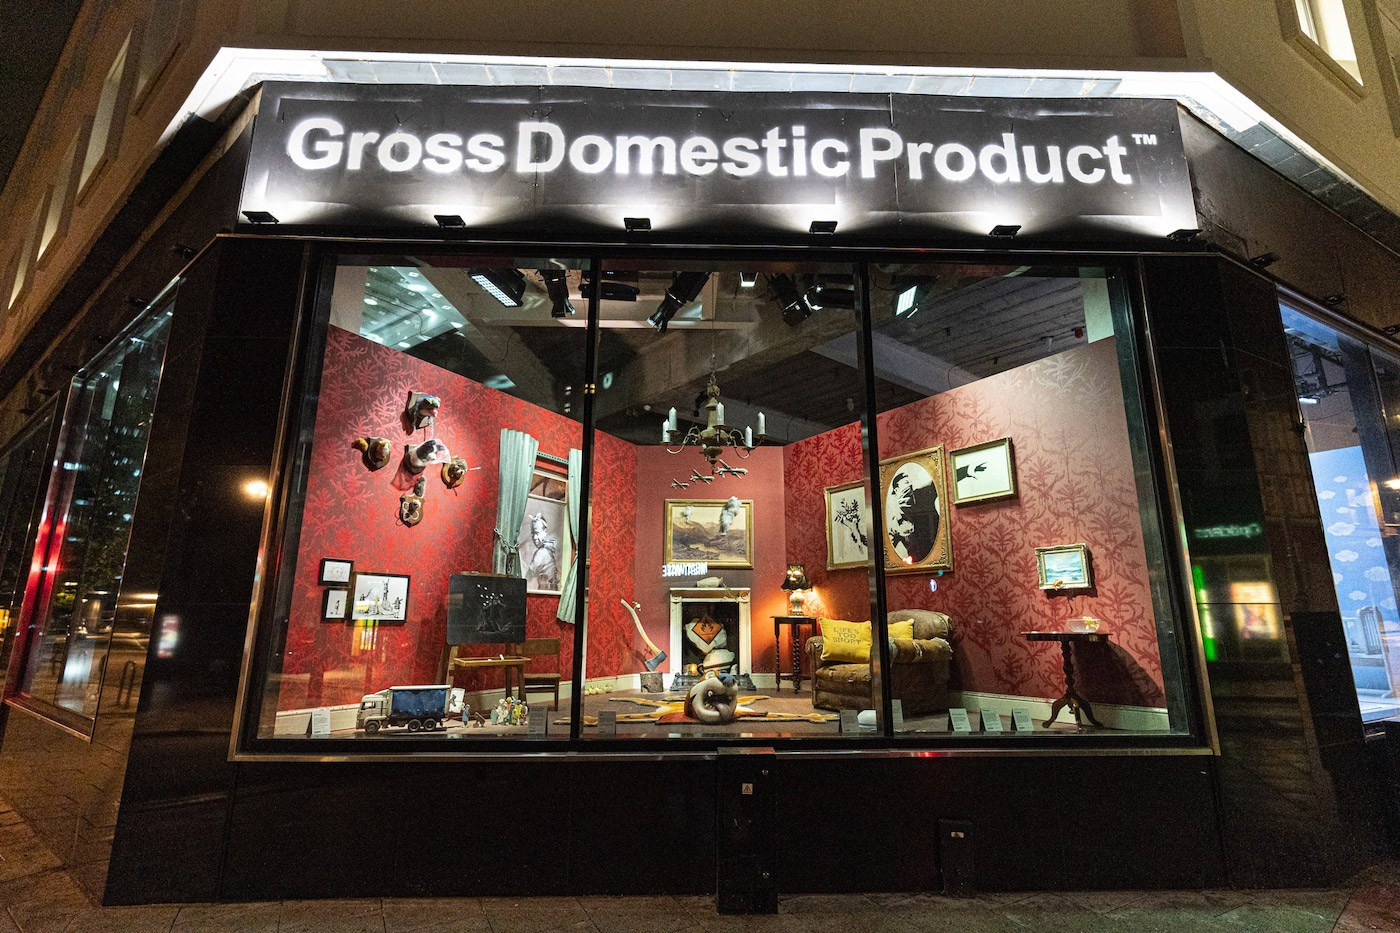 Gross-Domestic-Product-1-